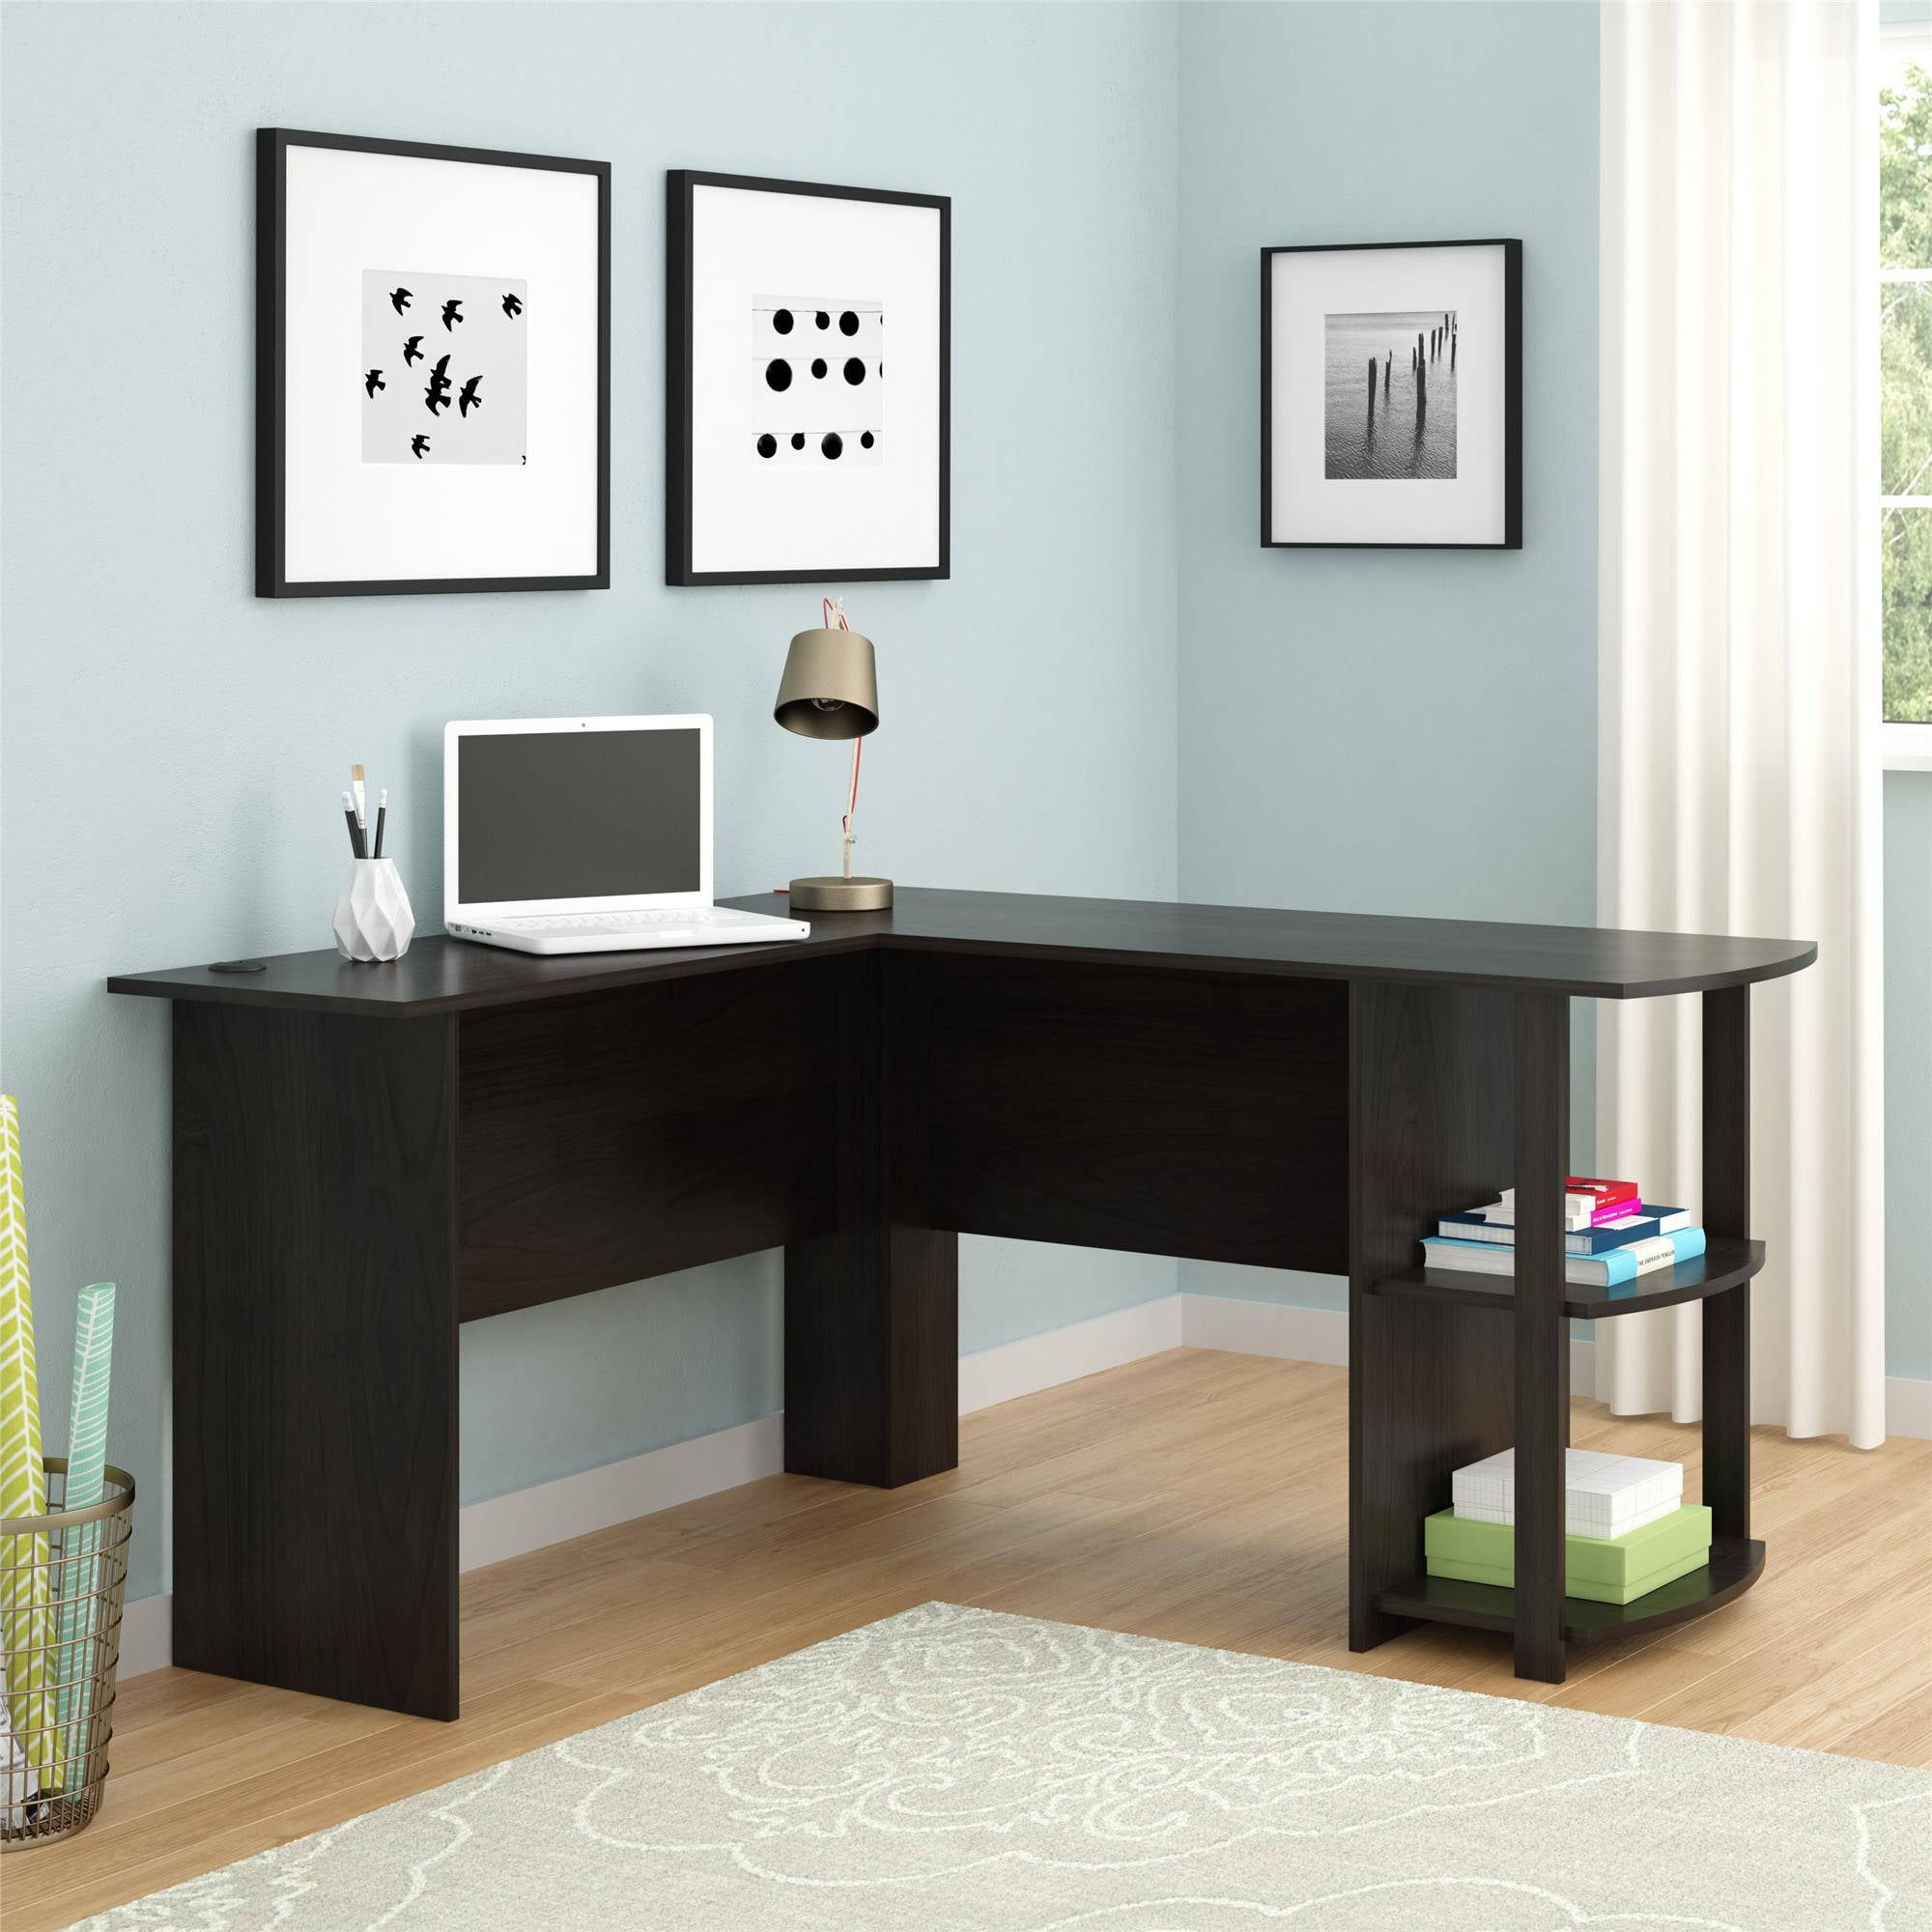 Desks For Teenage Rooms Amazing Teens' Room  Every Day Low Prices  Walmart Review